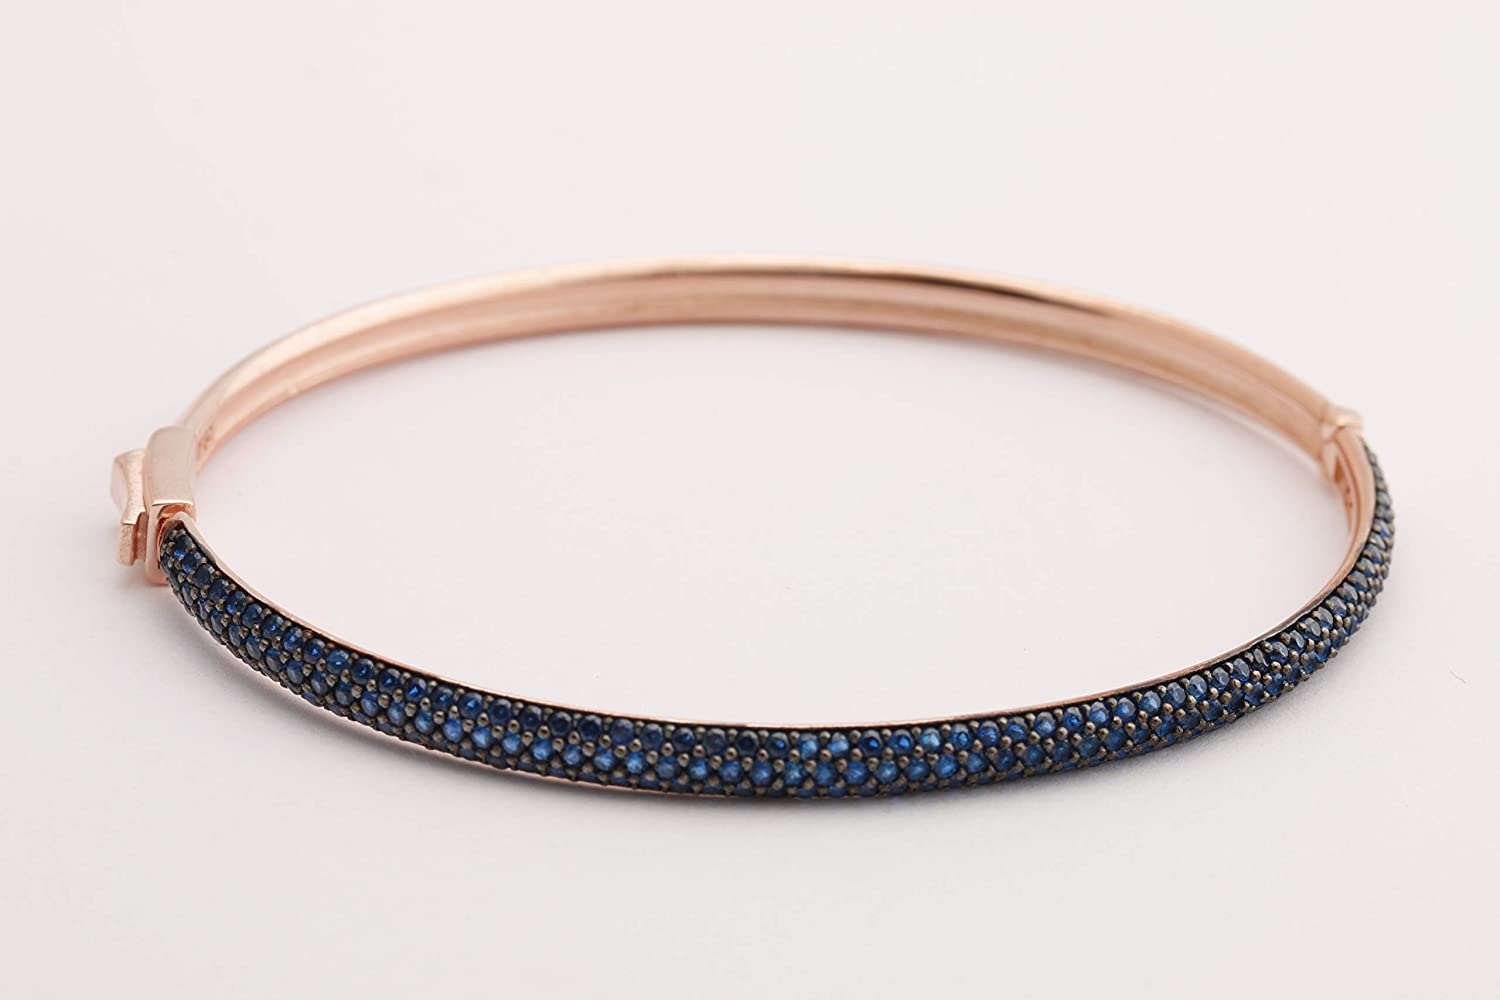 Perfect Design Turkish Handcrafted Jewelry Round Cut Sapphire Zircon Jewelry 925 Sterling Silver Rose Gold Bangle Women Gift Bracelet